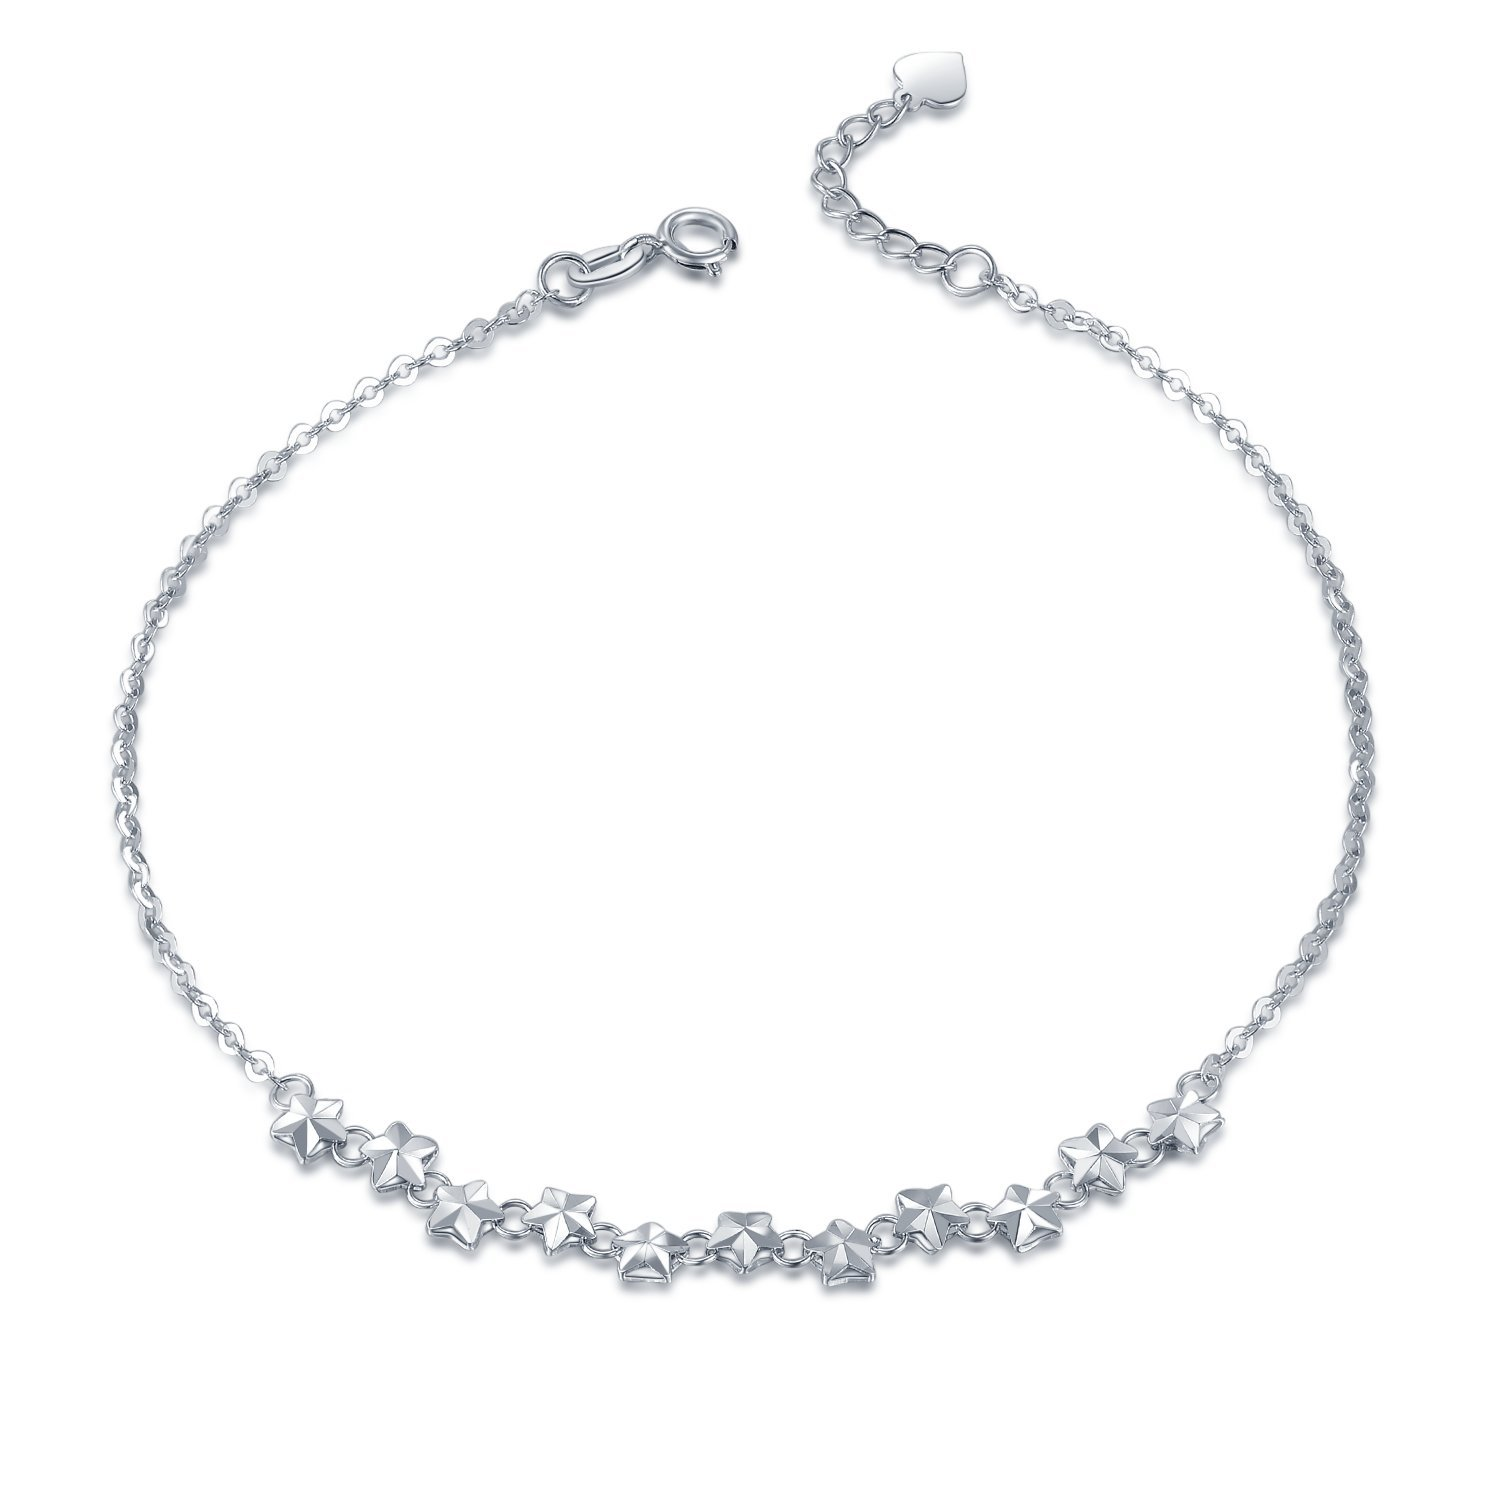 MaBelle 14K White Gold Diamond-Cut Starry Night Twinkle Star Anchor Chain Anklet (9.25'')